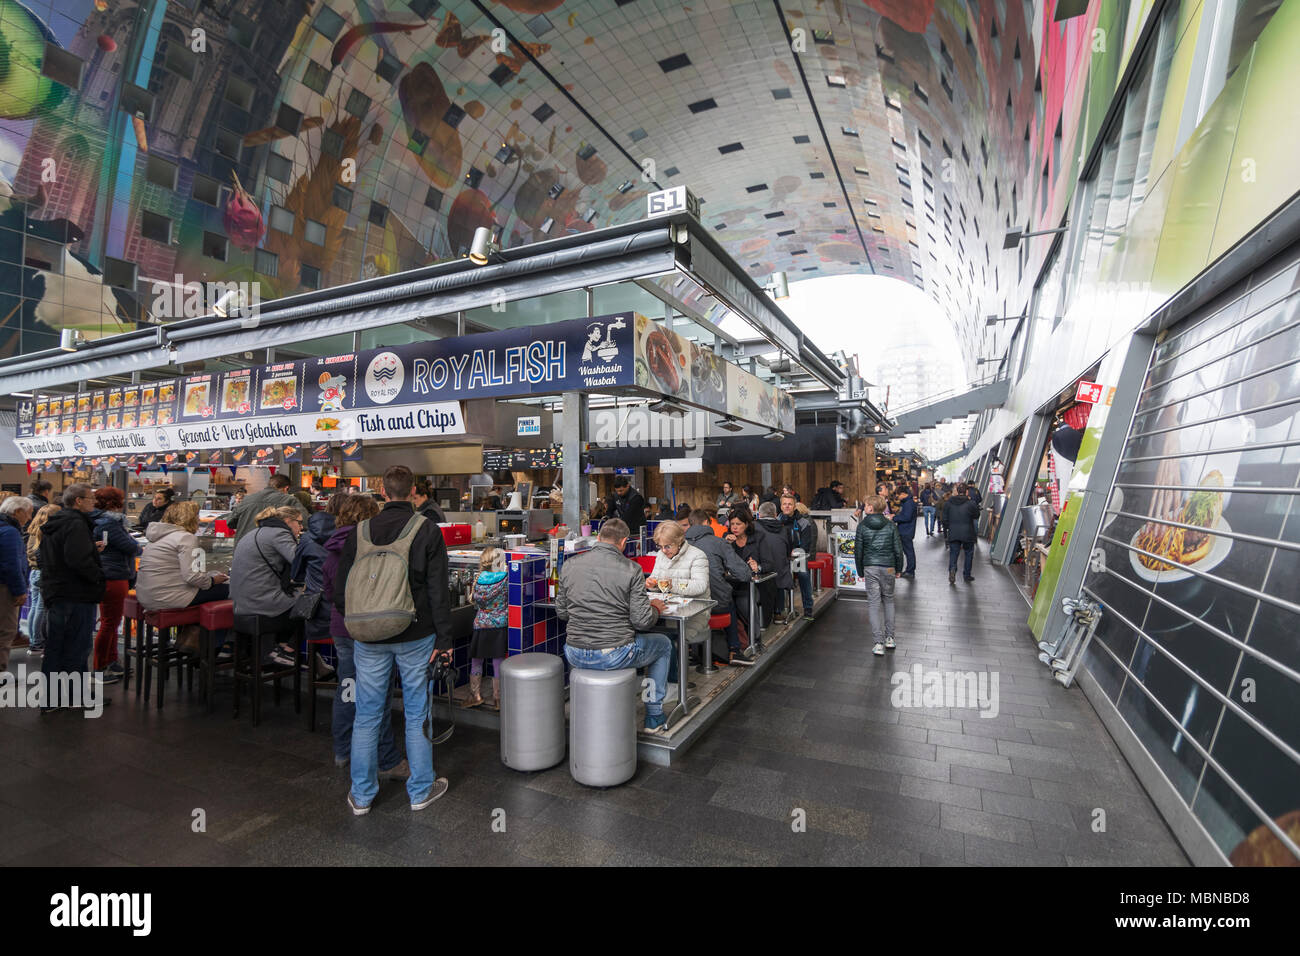 Modern indoor fish market stock photos modern indoor for Fish market albany ny